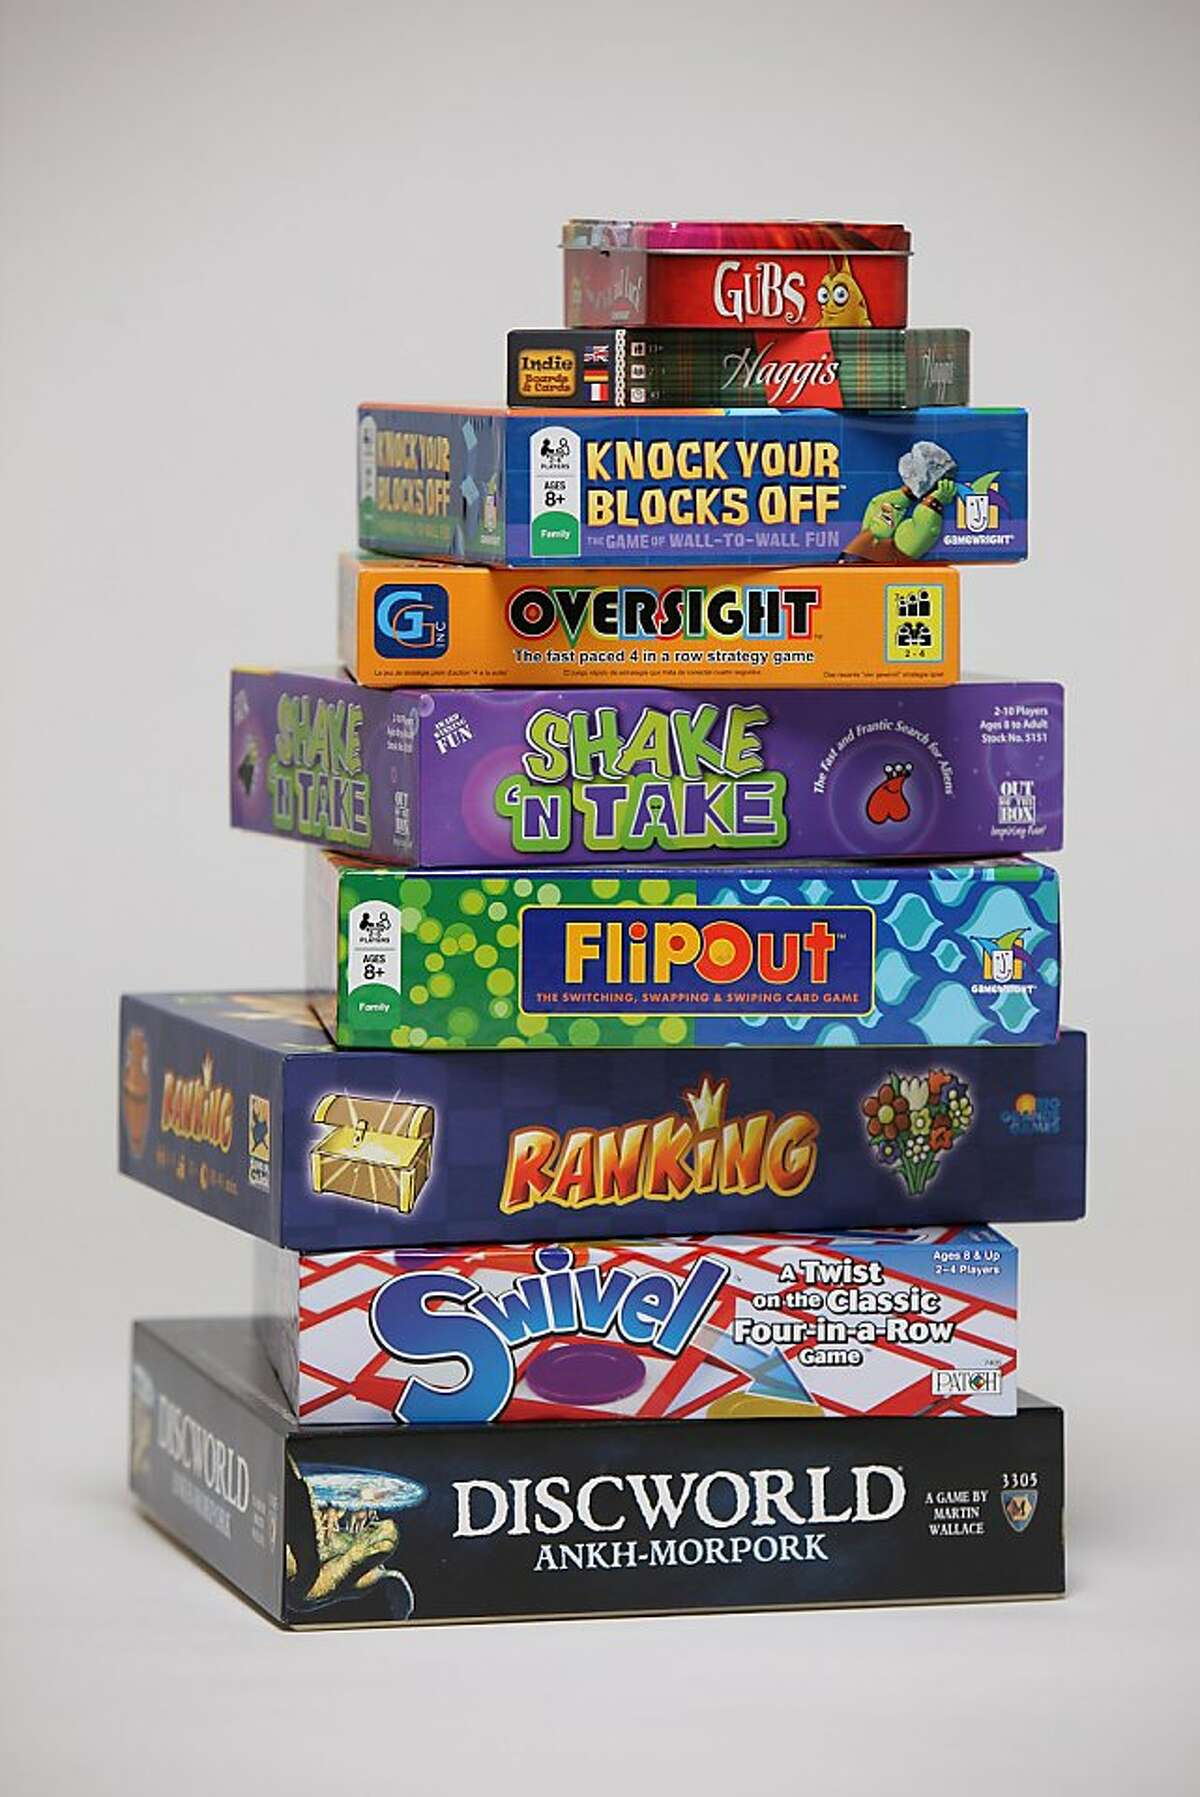 For the annual board game consumer guide, the game boxes and/or pieces photographed in San Francisco, Calif., on Wednesday, November 23, 2011.